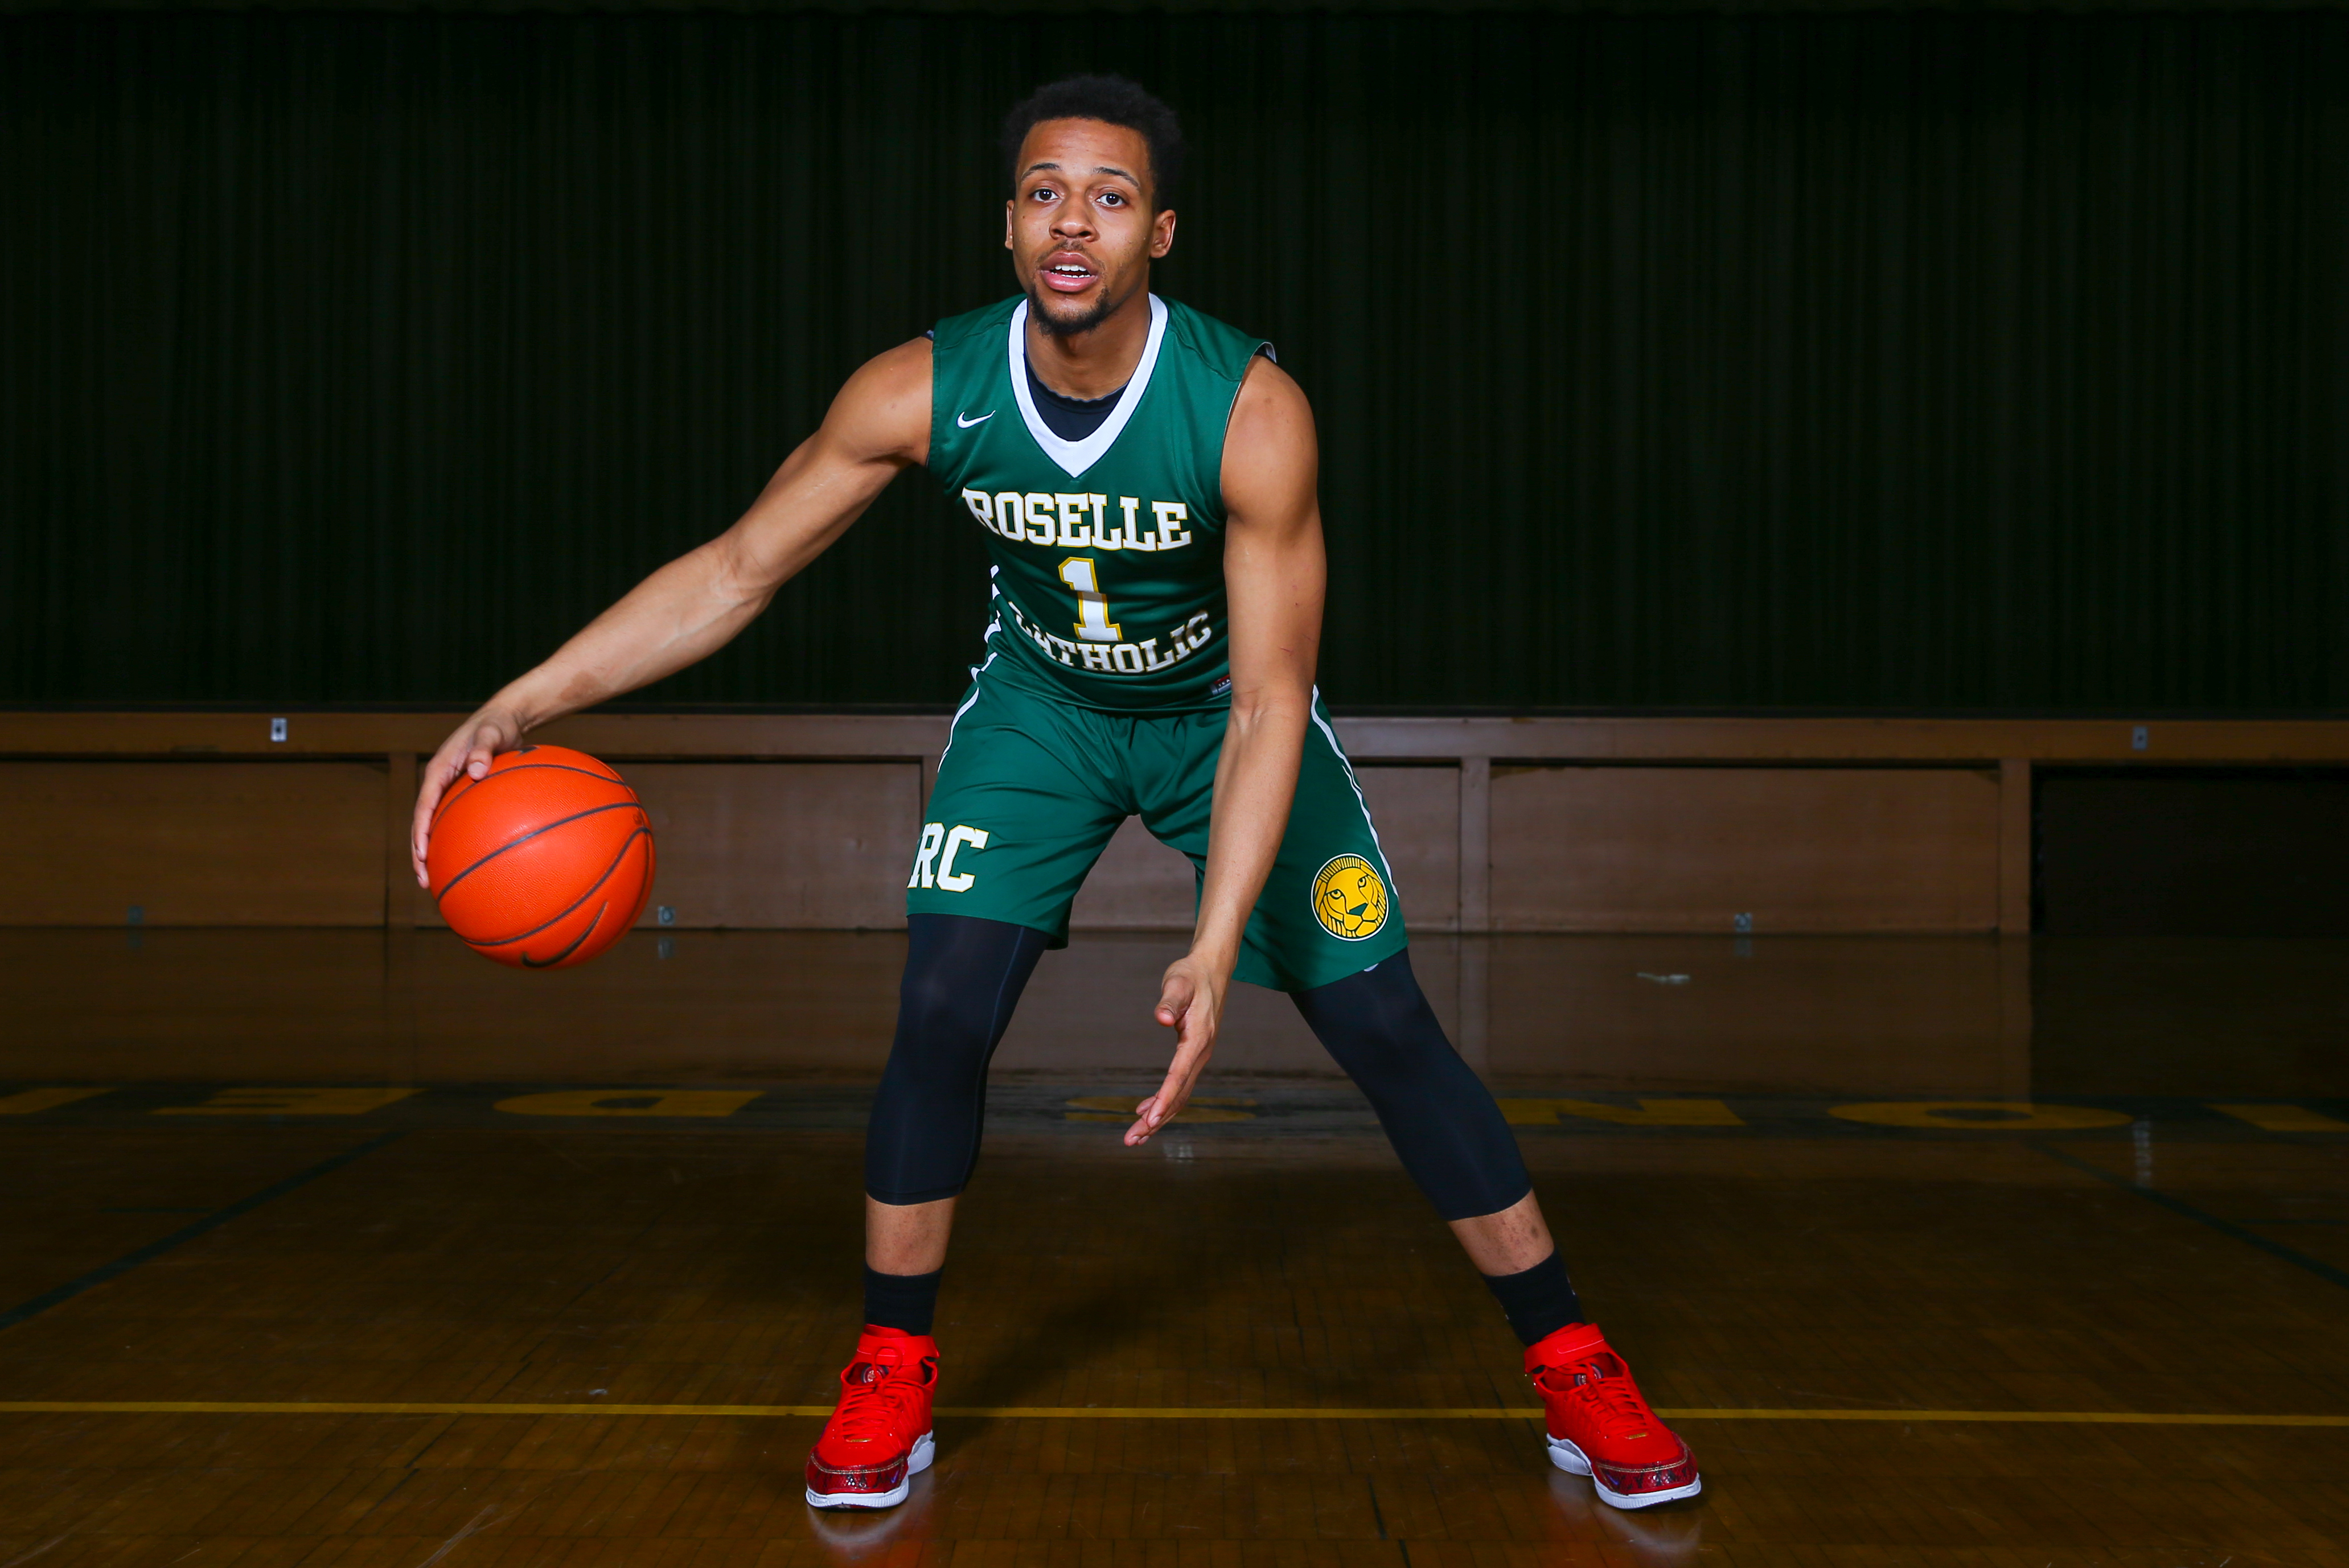 Isaiah Briscoe of Roselle, N.J. (Photo: Ed Mulholland, USA TODAY Sports)